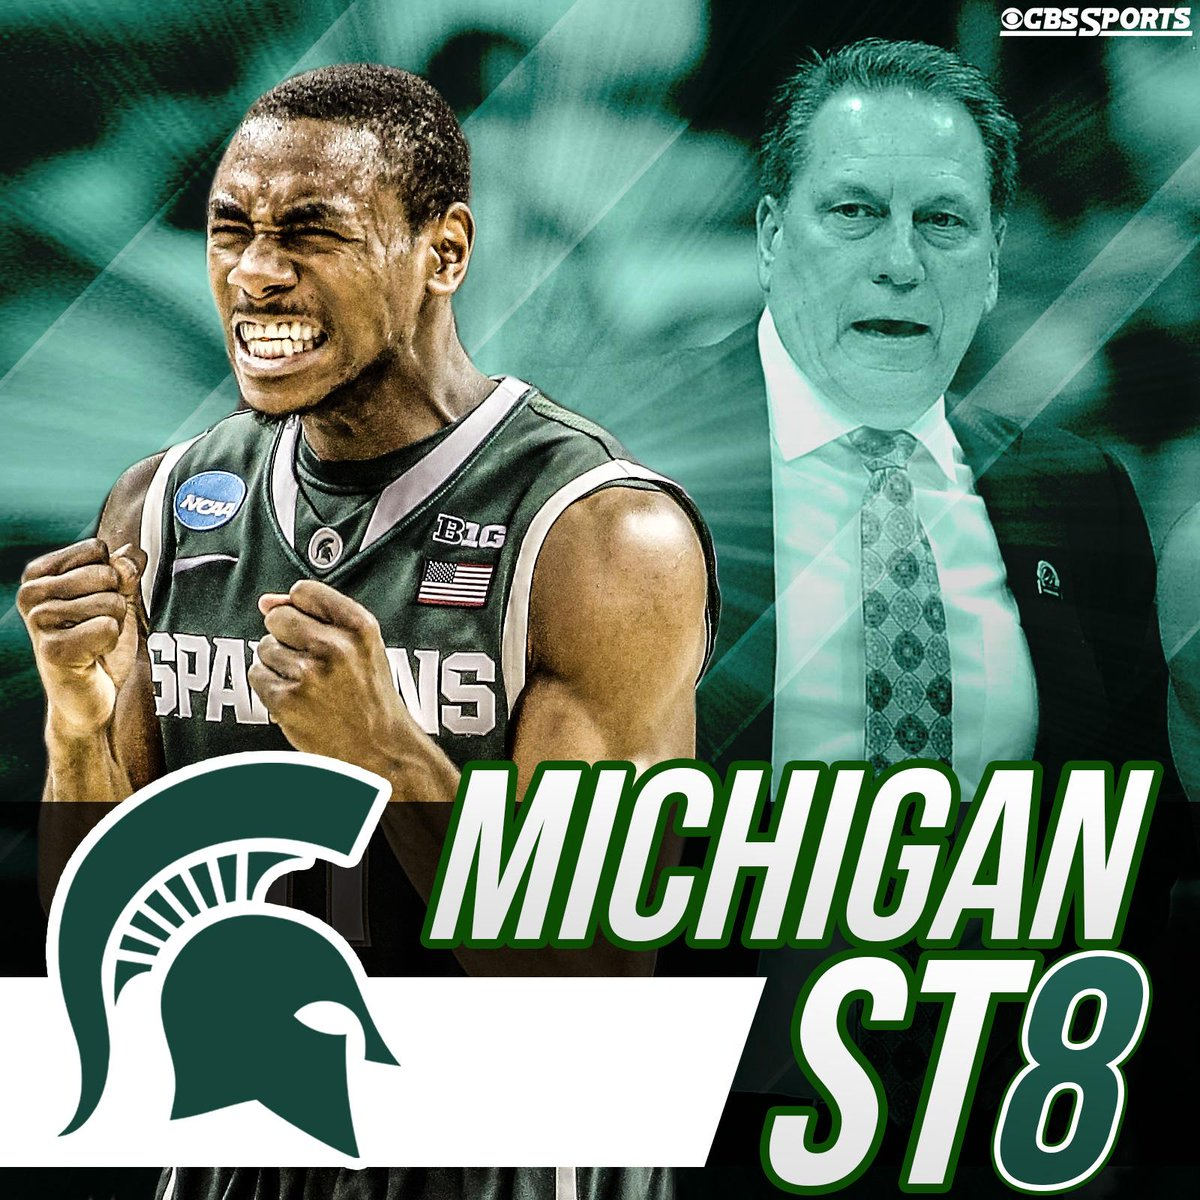 Michigan State continues to be elite in March. http://t.co/WxyzPnfaYG